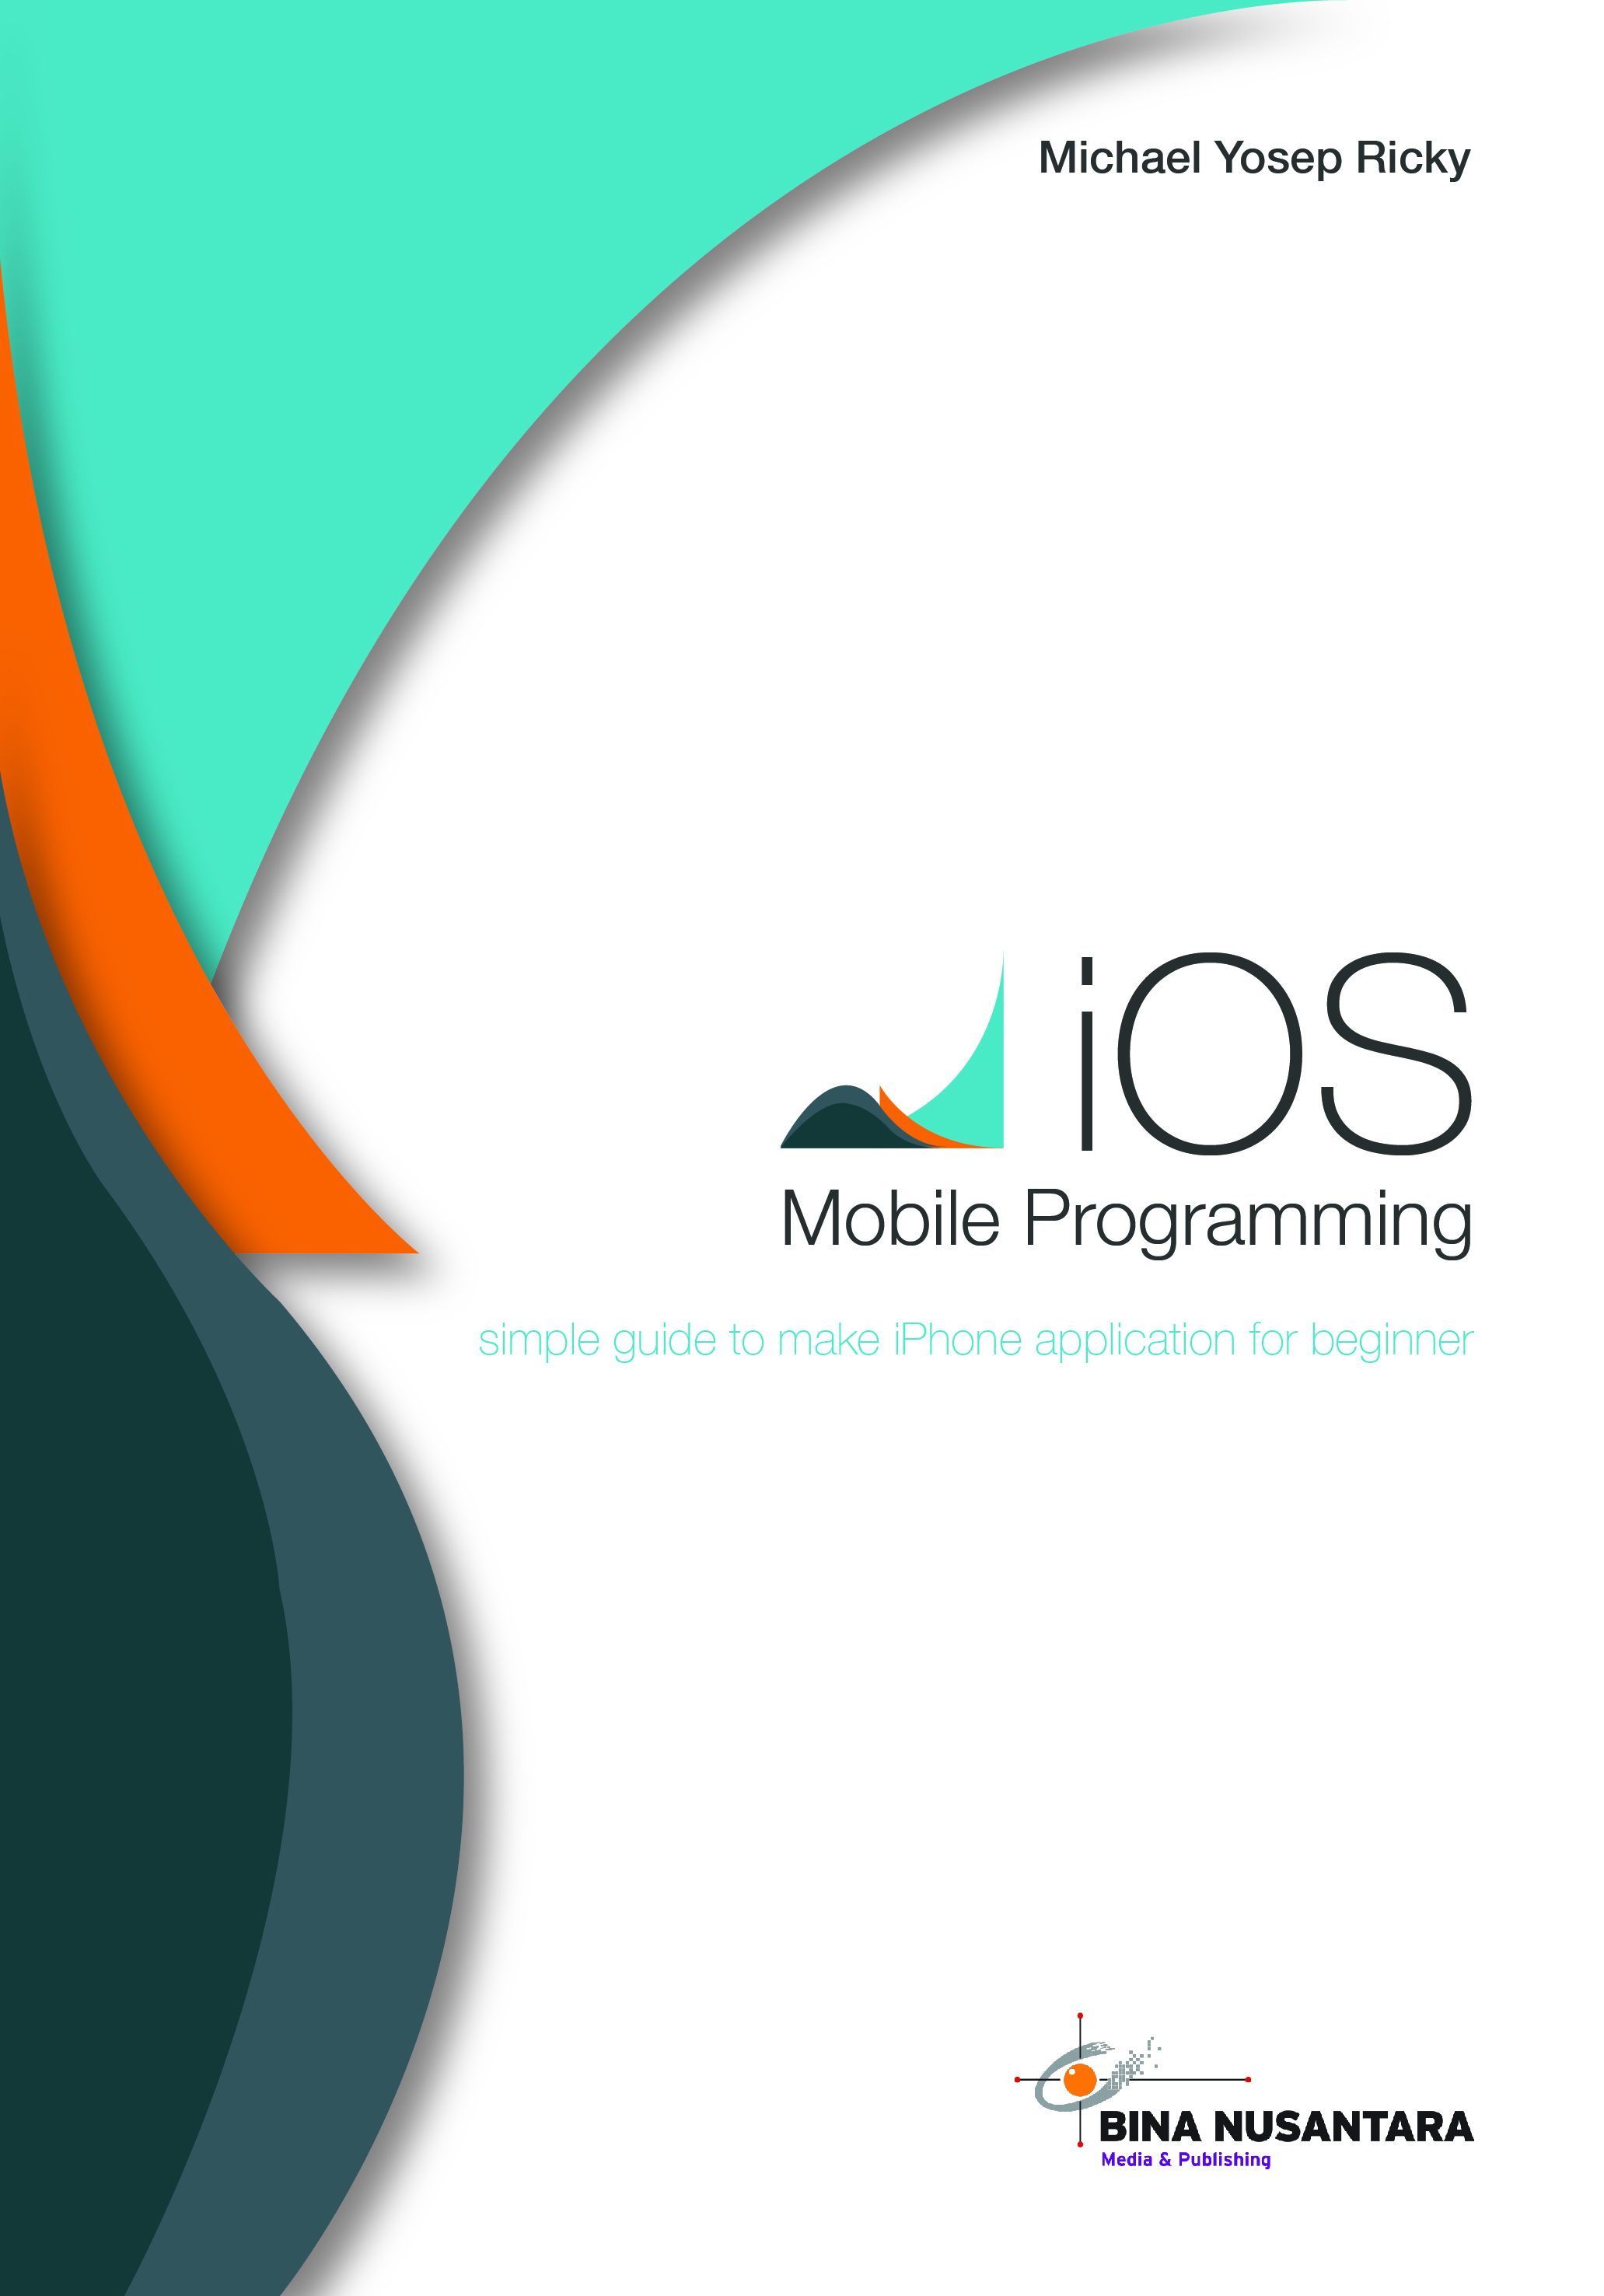 IOS MOBILE PROGRAMMING